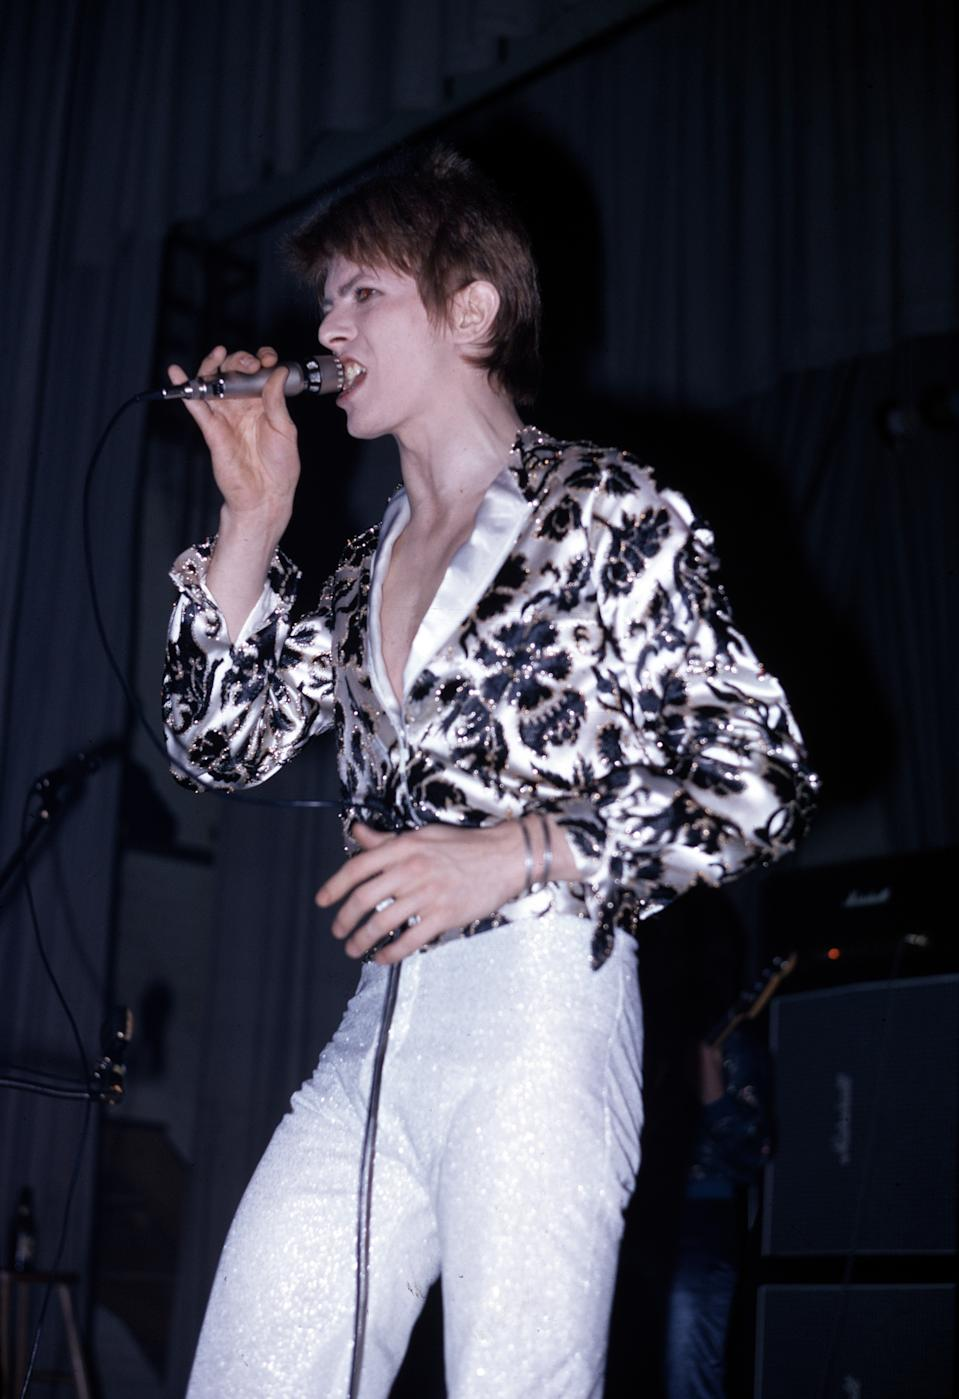 David Bowie (1947-2016) performs live on stage with his backing group The Spiders From Mars on the first night of the Ziggy Stardust Tour at Borough Assembly Hall in Aylesbury, Buckinghamshire on 29th January 1972. (Photo by Michael Putland/Getty Images)